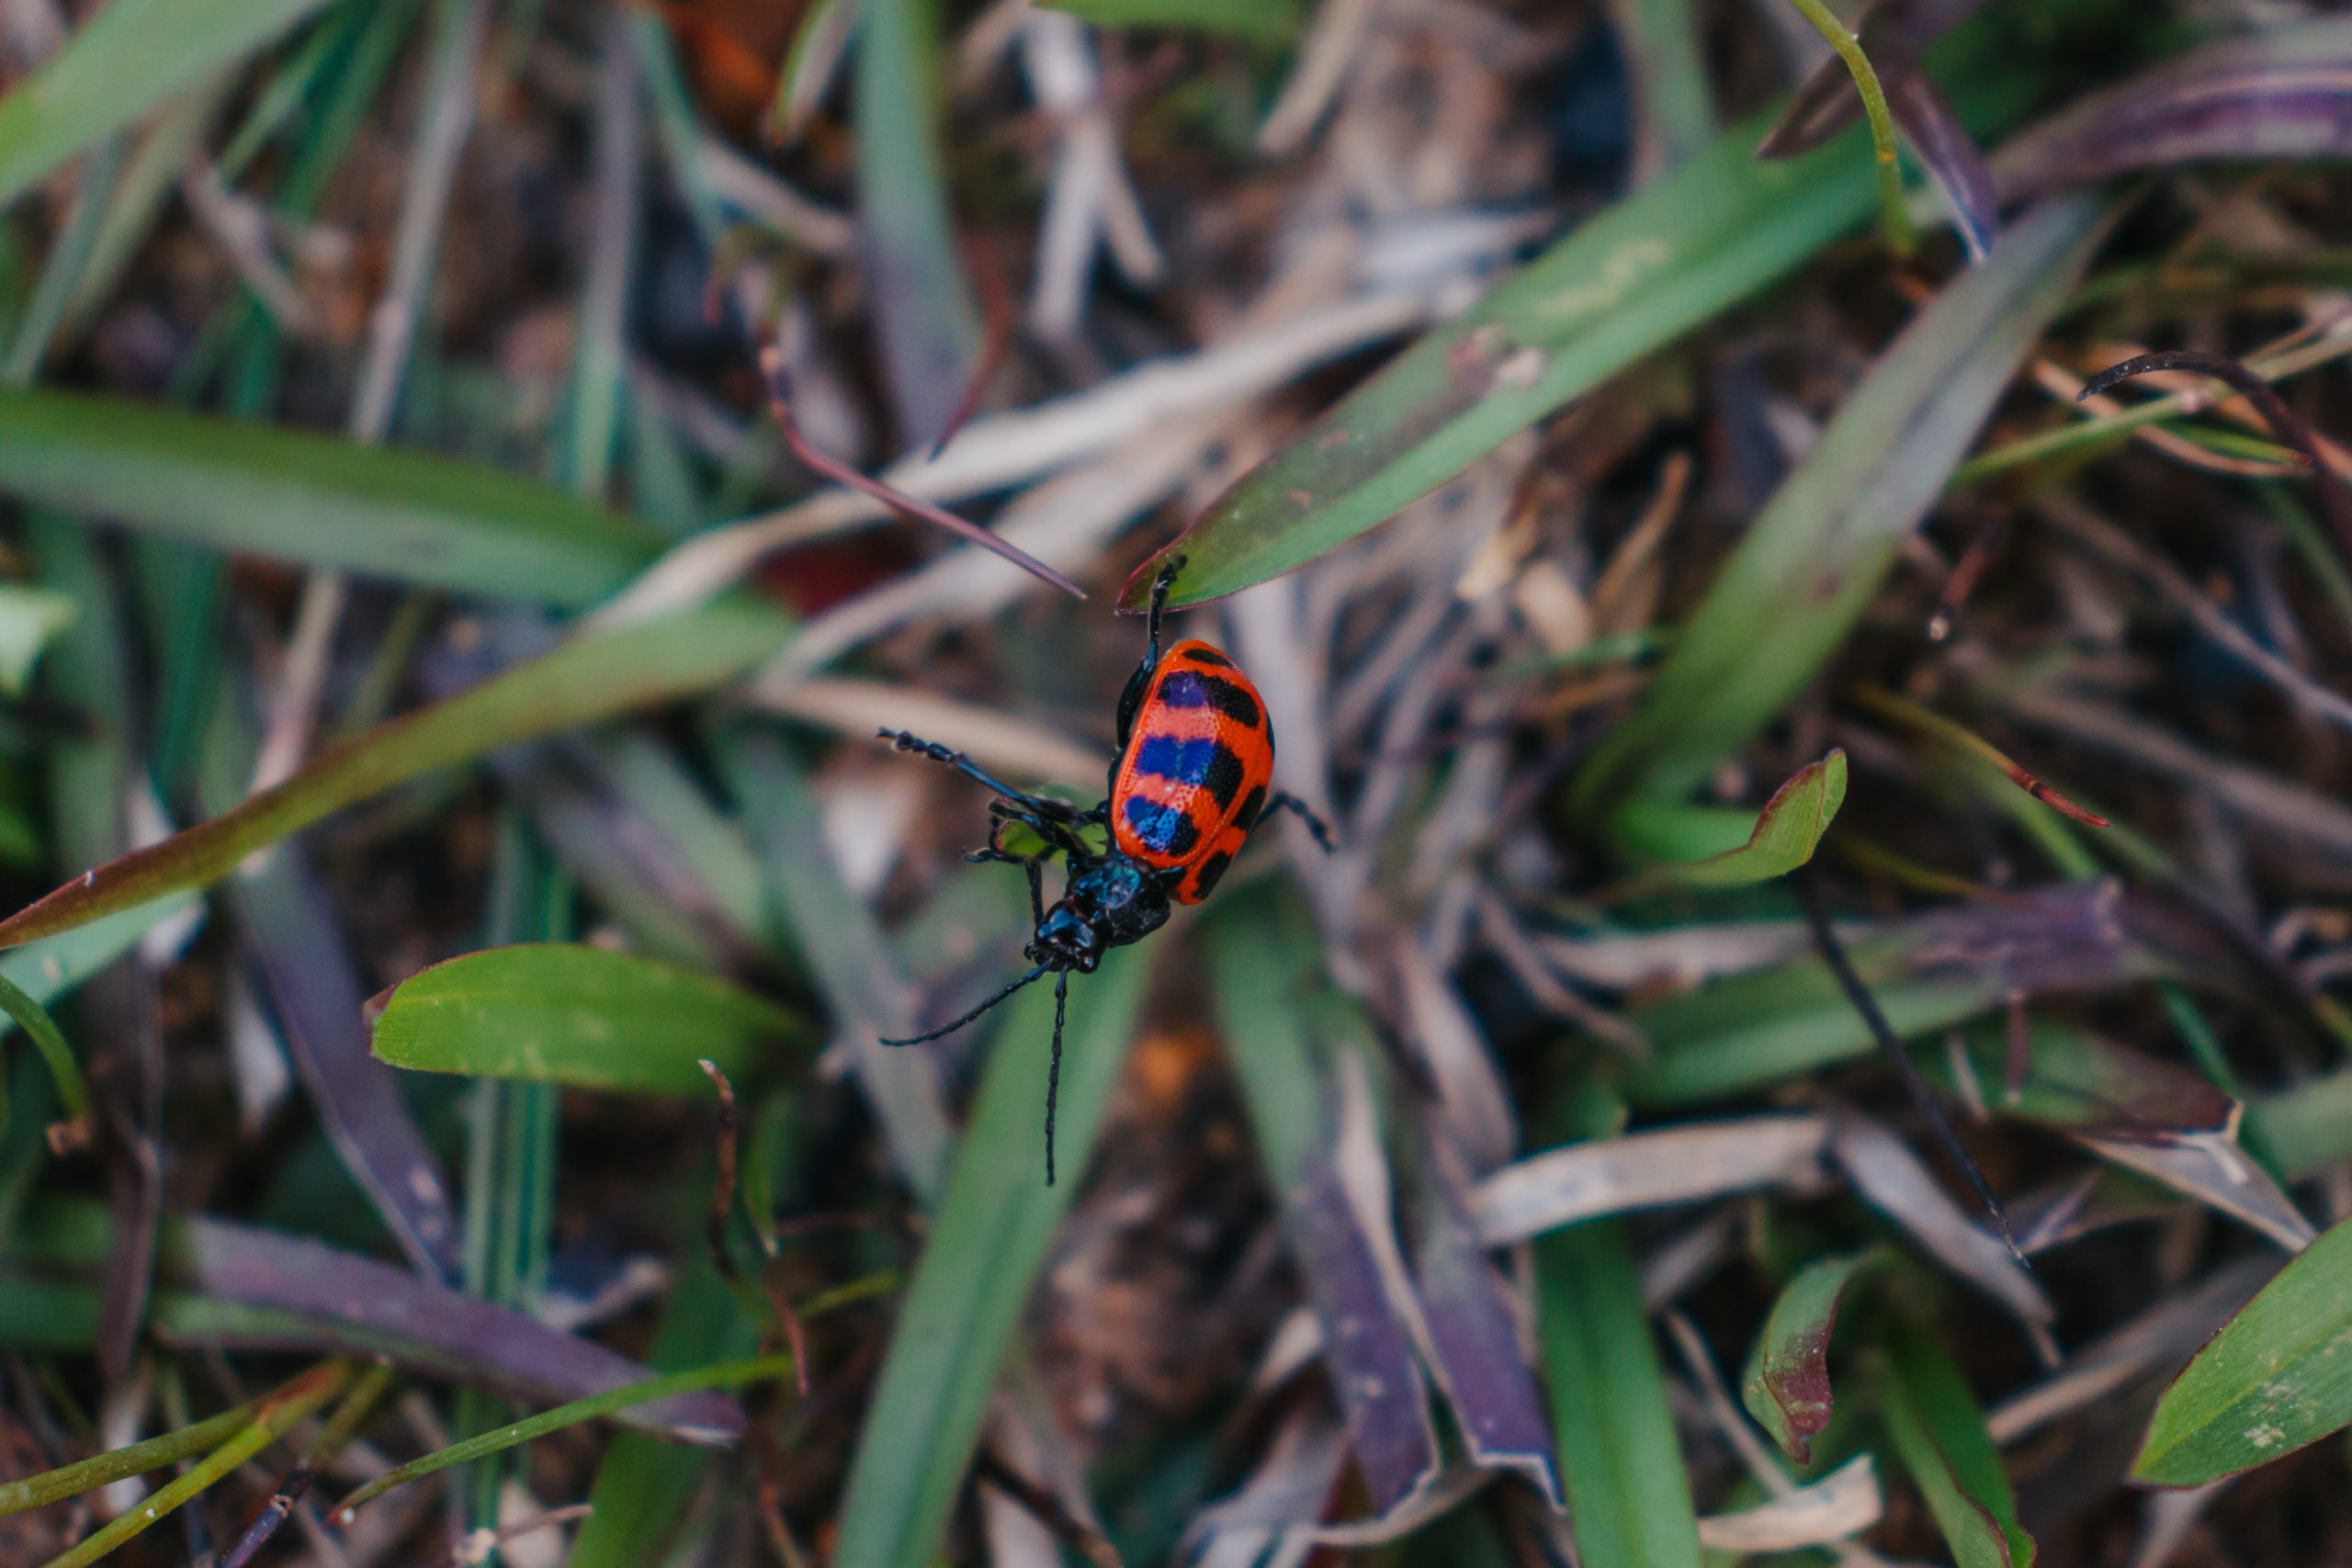 Red bug on plant